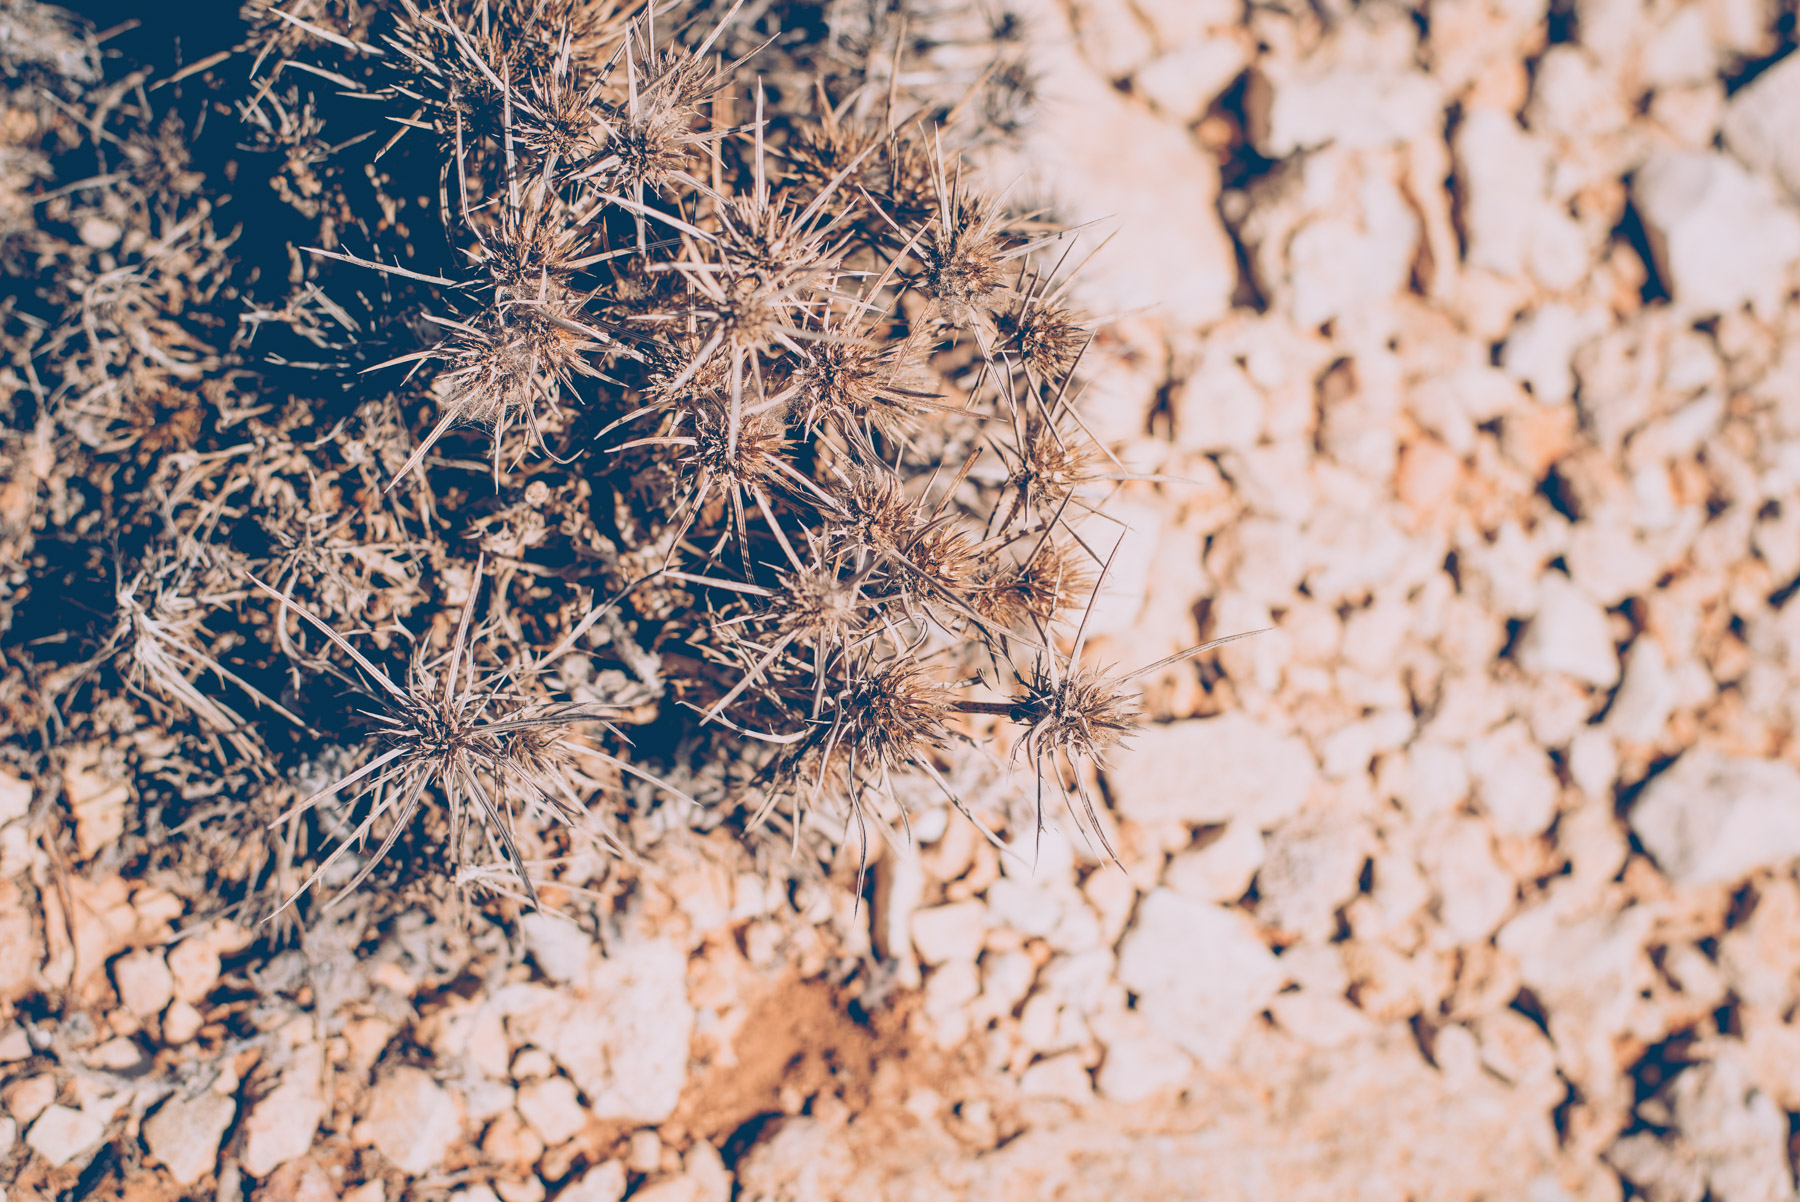 detail of spiky plants growing on the island of lampedusa